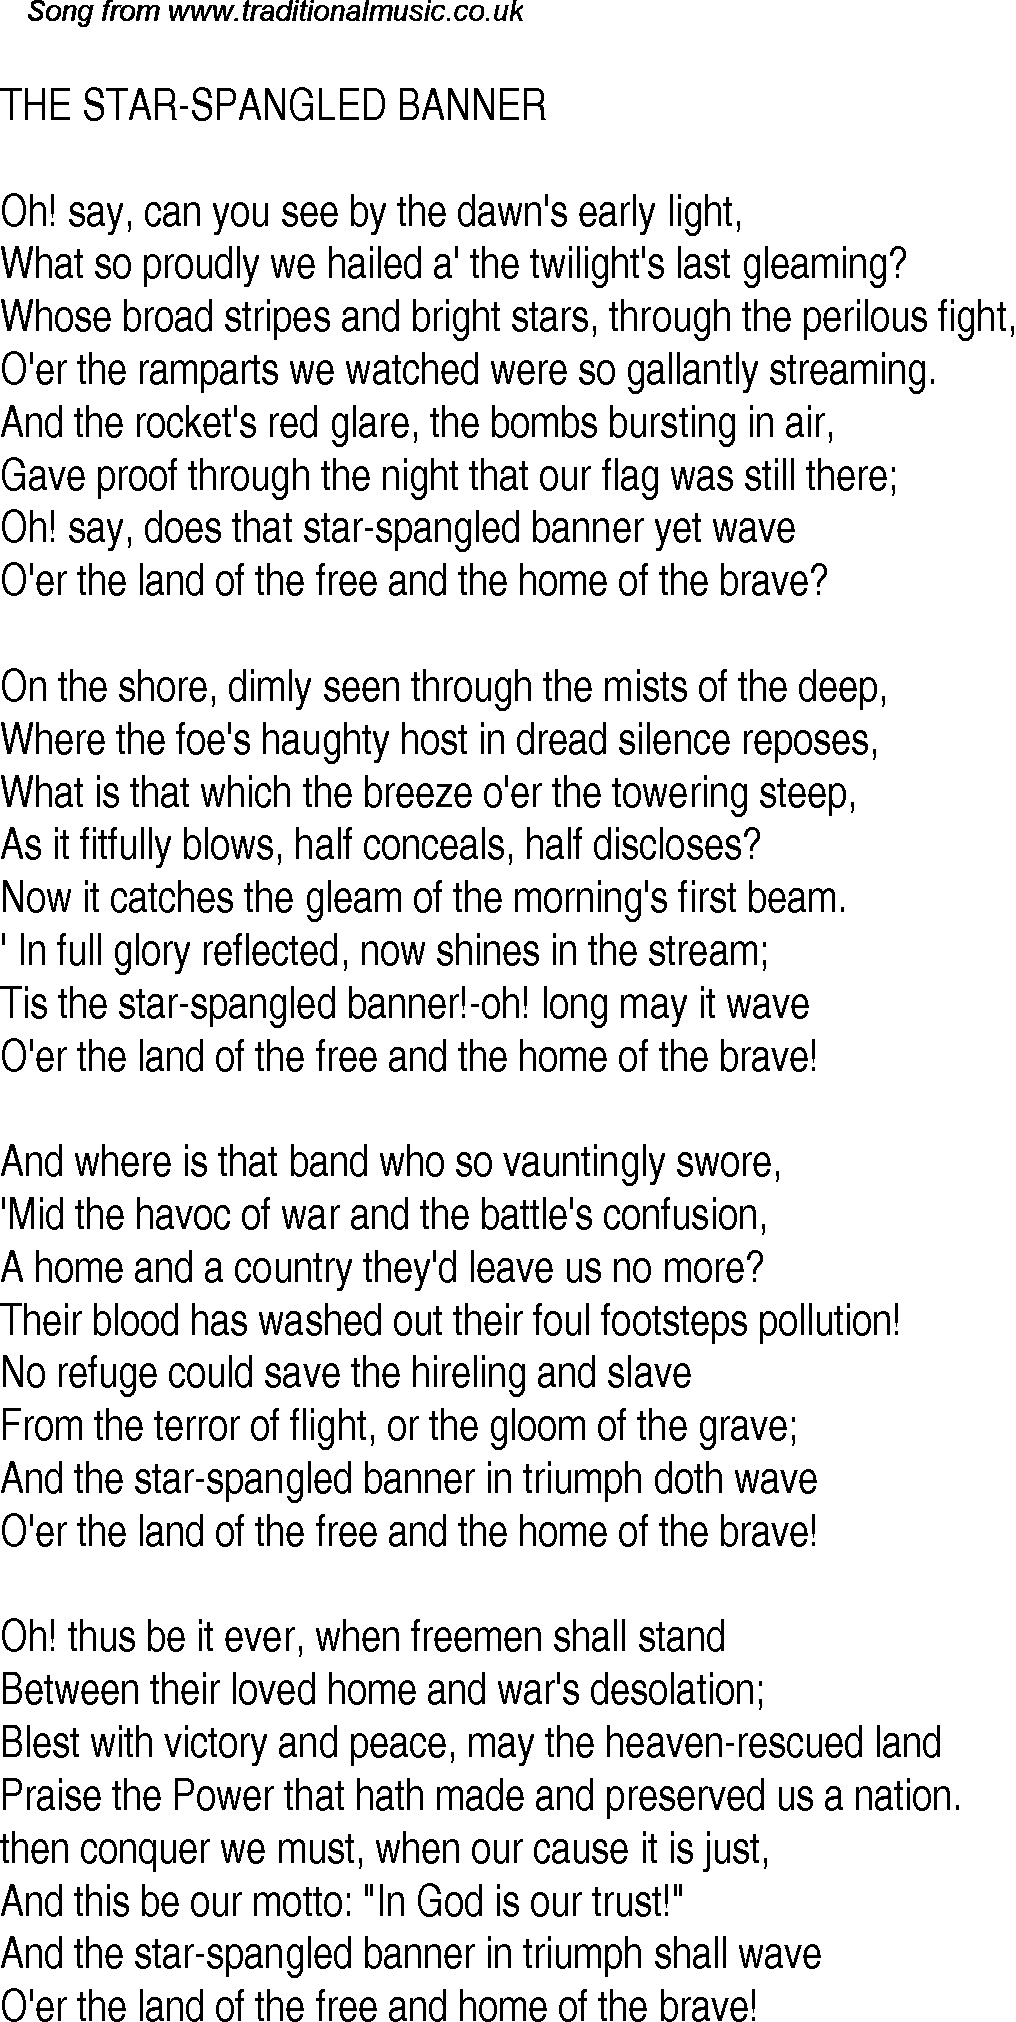 Star spangled banner lyrics meaning